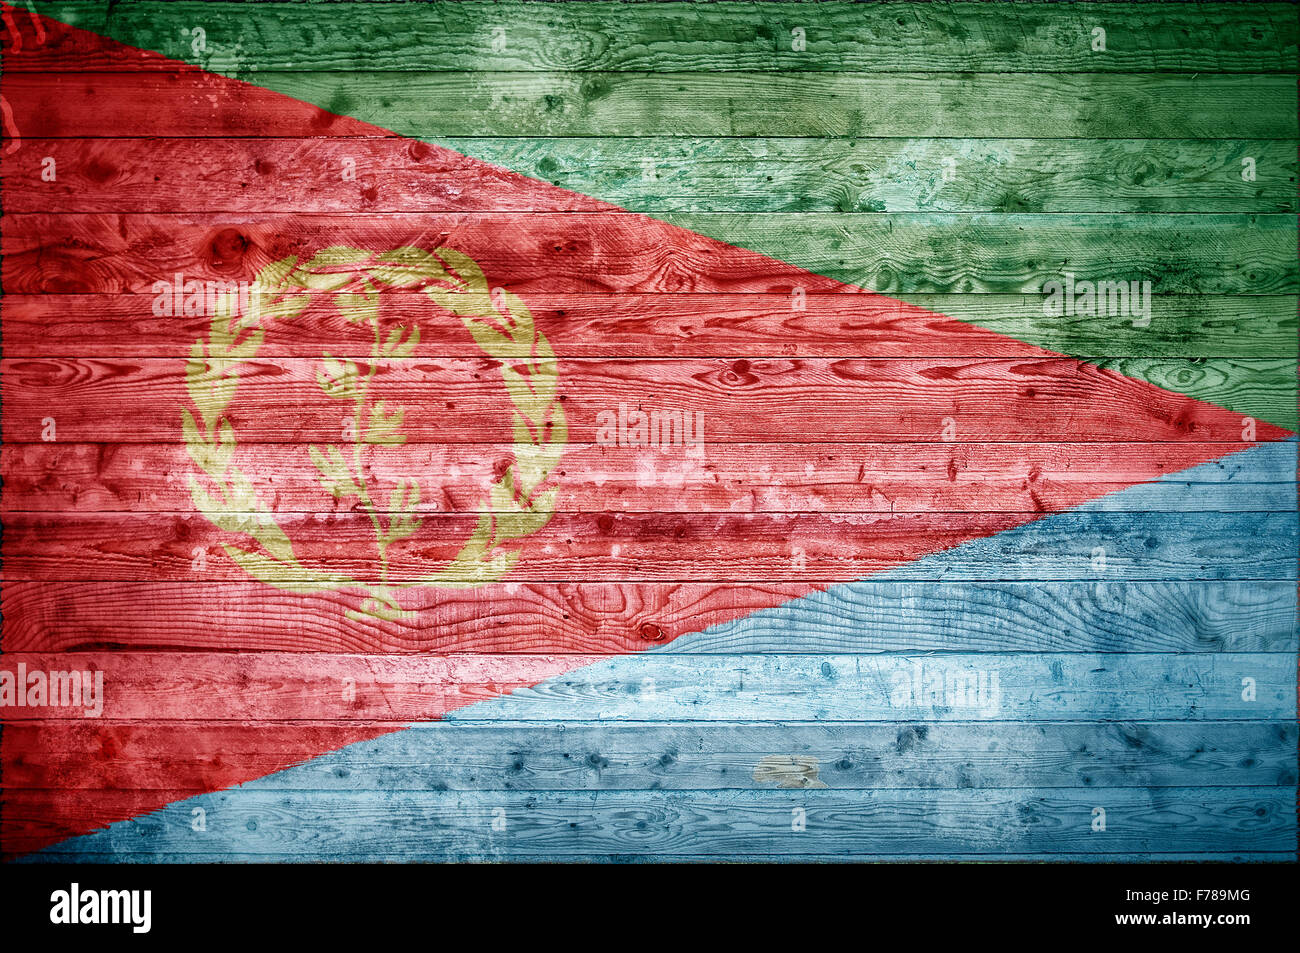 A vignetted background image of the flag of Eritrea painted onto wooden boards of a wall or floor. - Stock Image